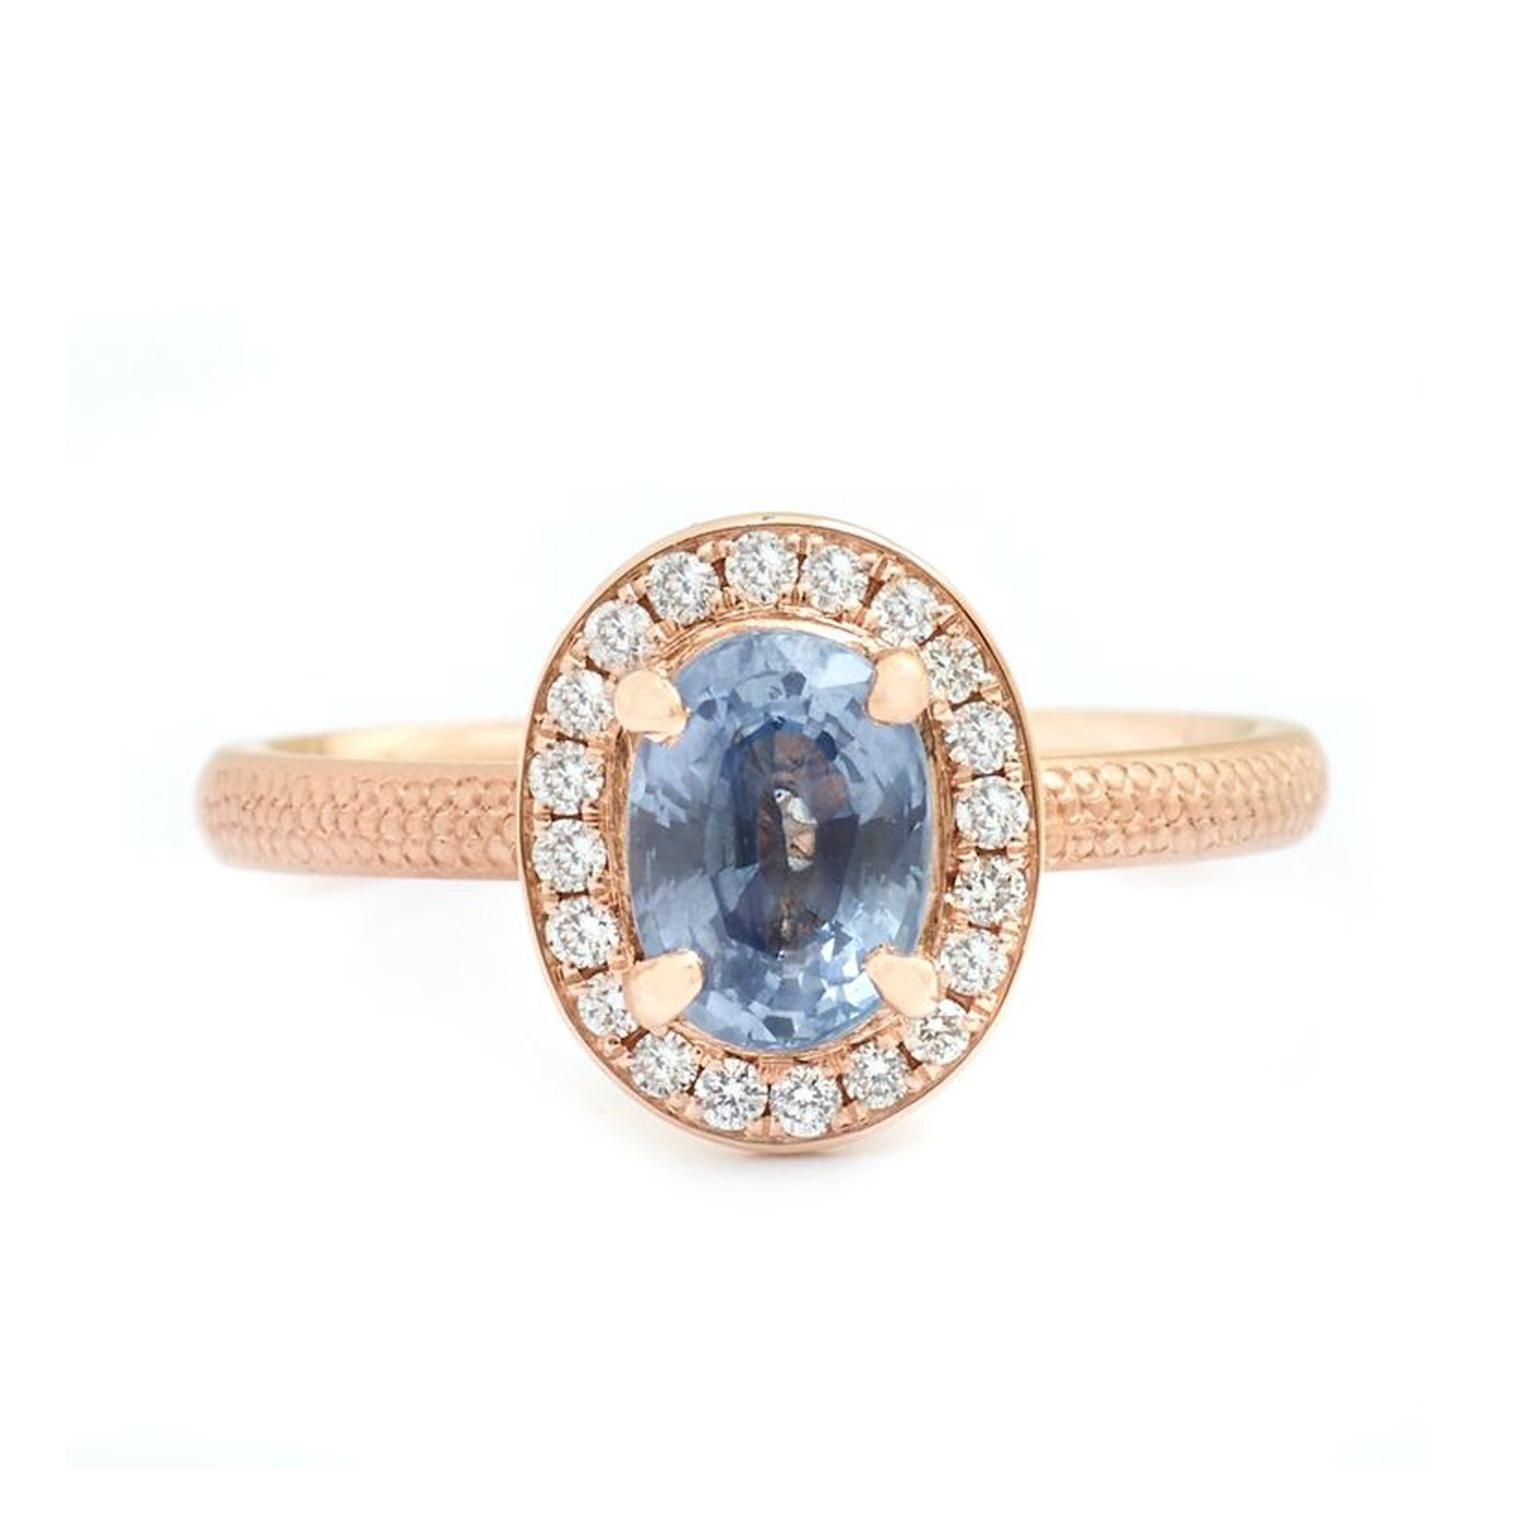 Periwinkle blue sapphire engagement ring